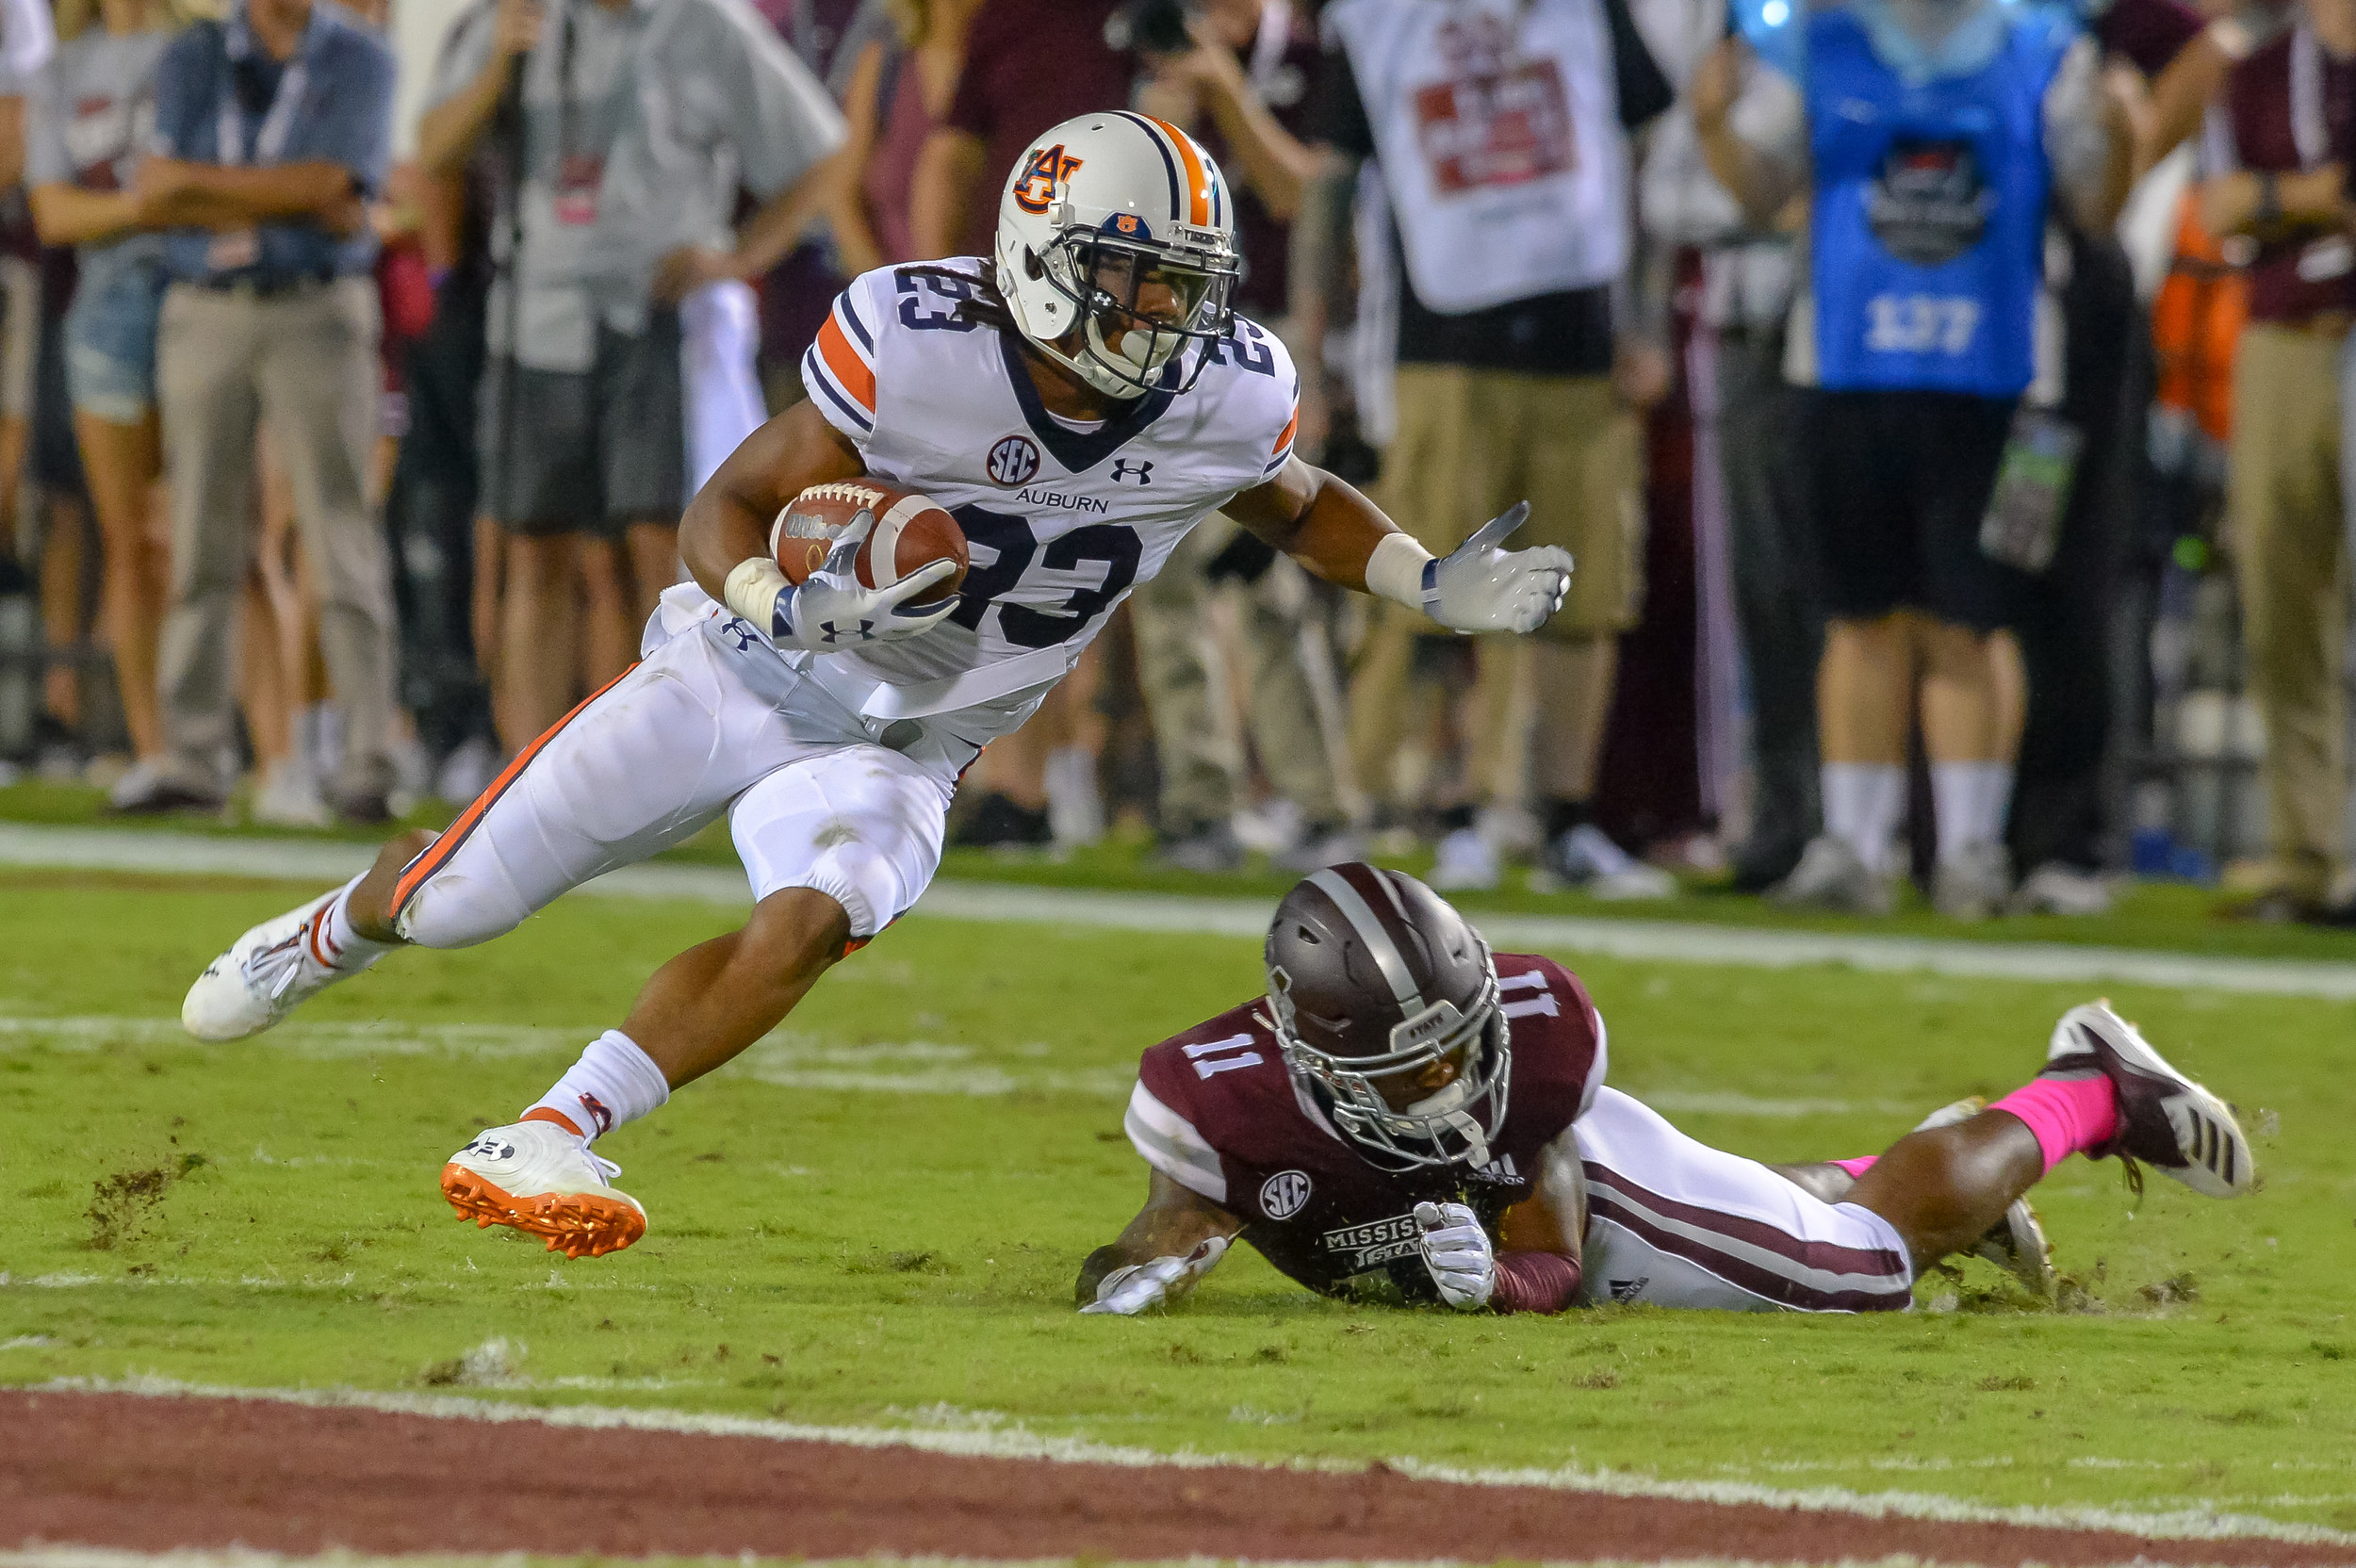 Auburn Tigers wide receiver Ryan Davis (23) runs past the tackle of Mississippi State Bulldogs safety Jaquarius Landrews (11) during the first half of Saturday's game, at Davis Wade Stadium in Starkville, MS. Daily Mountain Eagle -  Jeff Johnsey